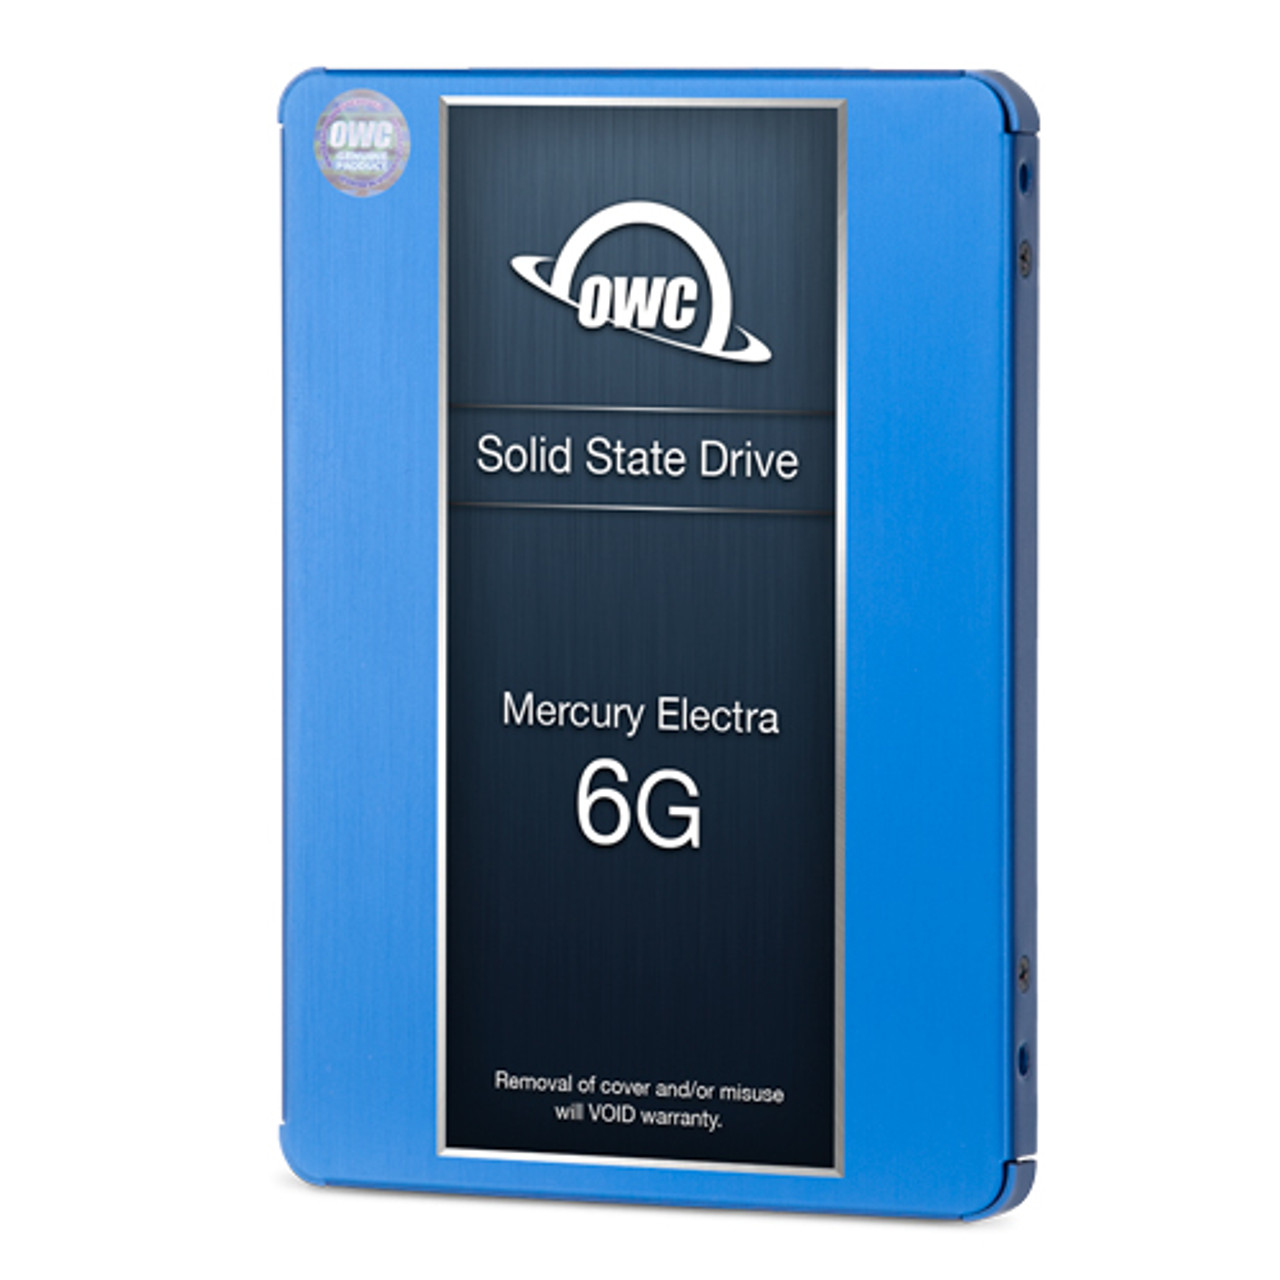 250GB OWC Mercury Electra 6G SSD - SSD Bay Add-In Kit for 2011 21.5-inch iMacs